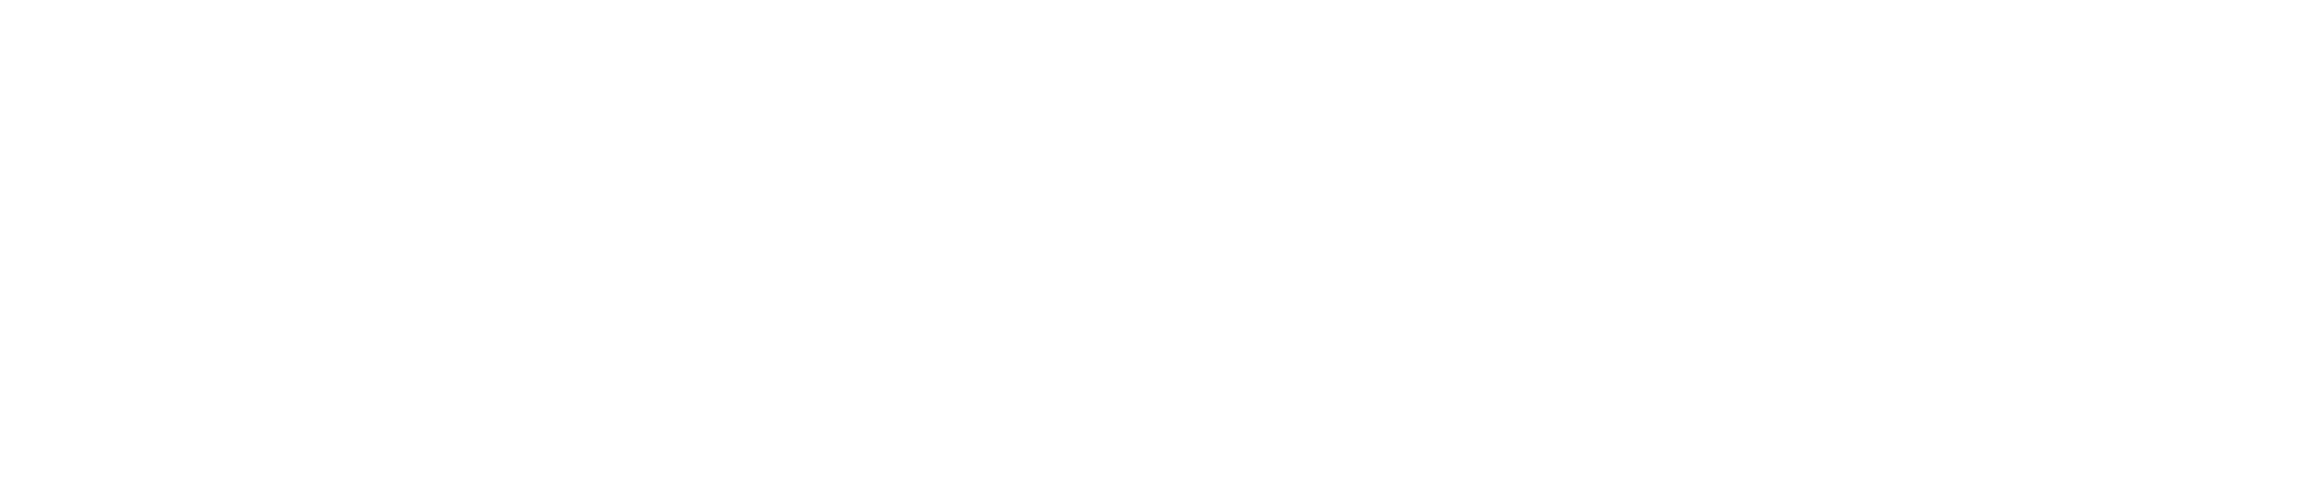 TASK-UK-Network-Member-of-Logo-white